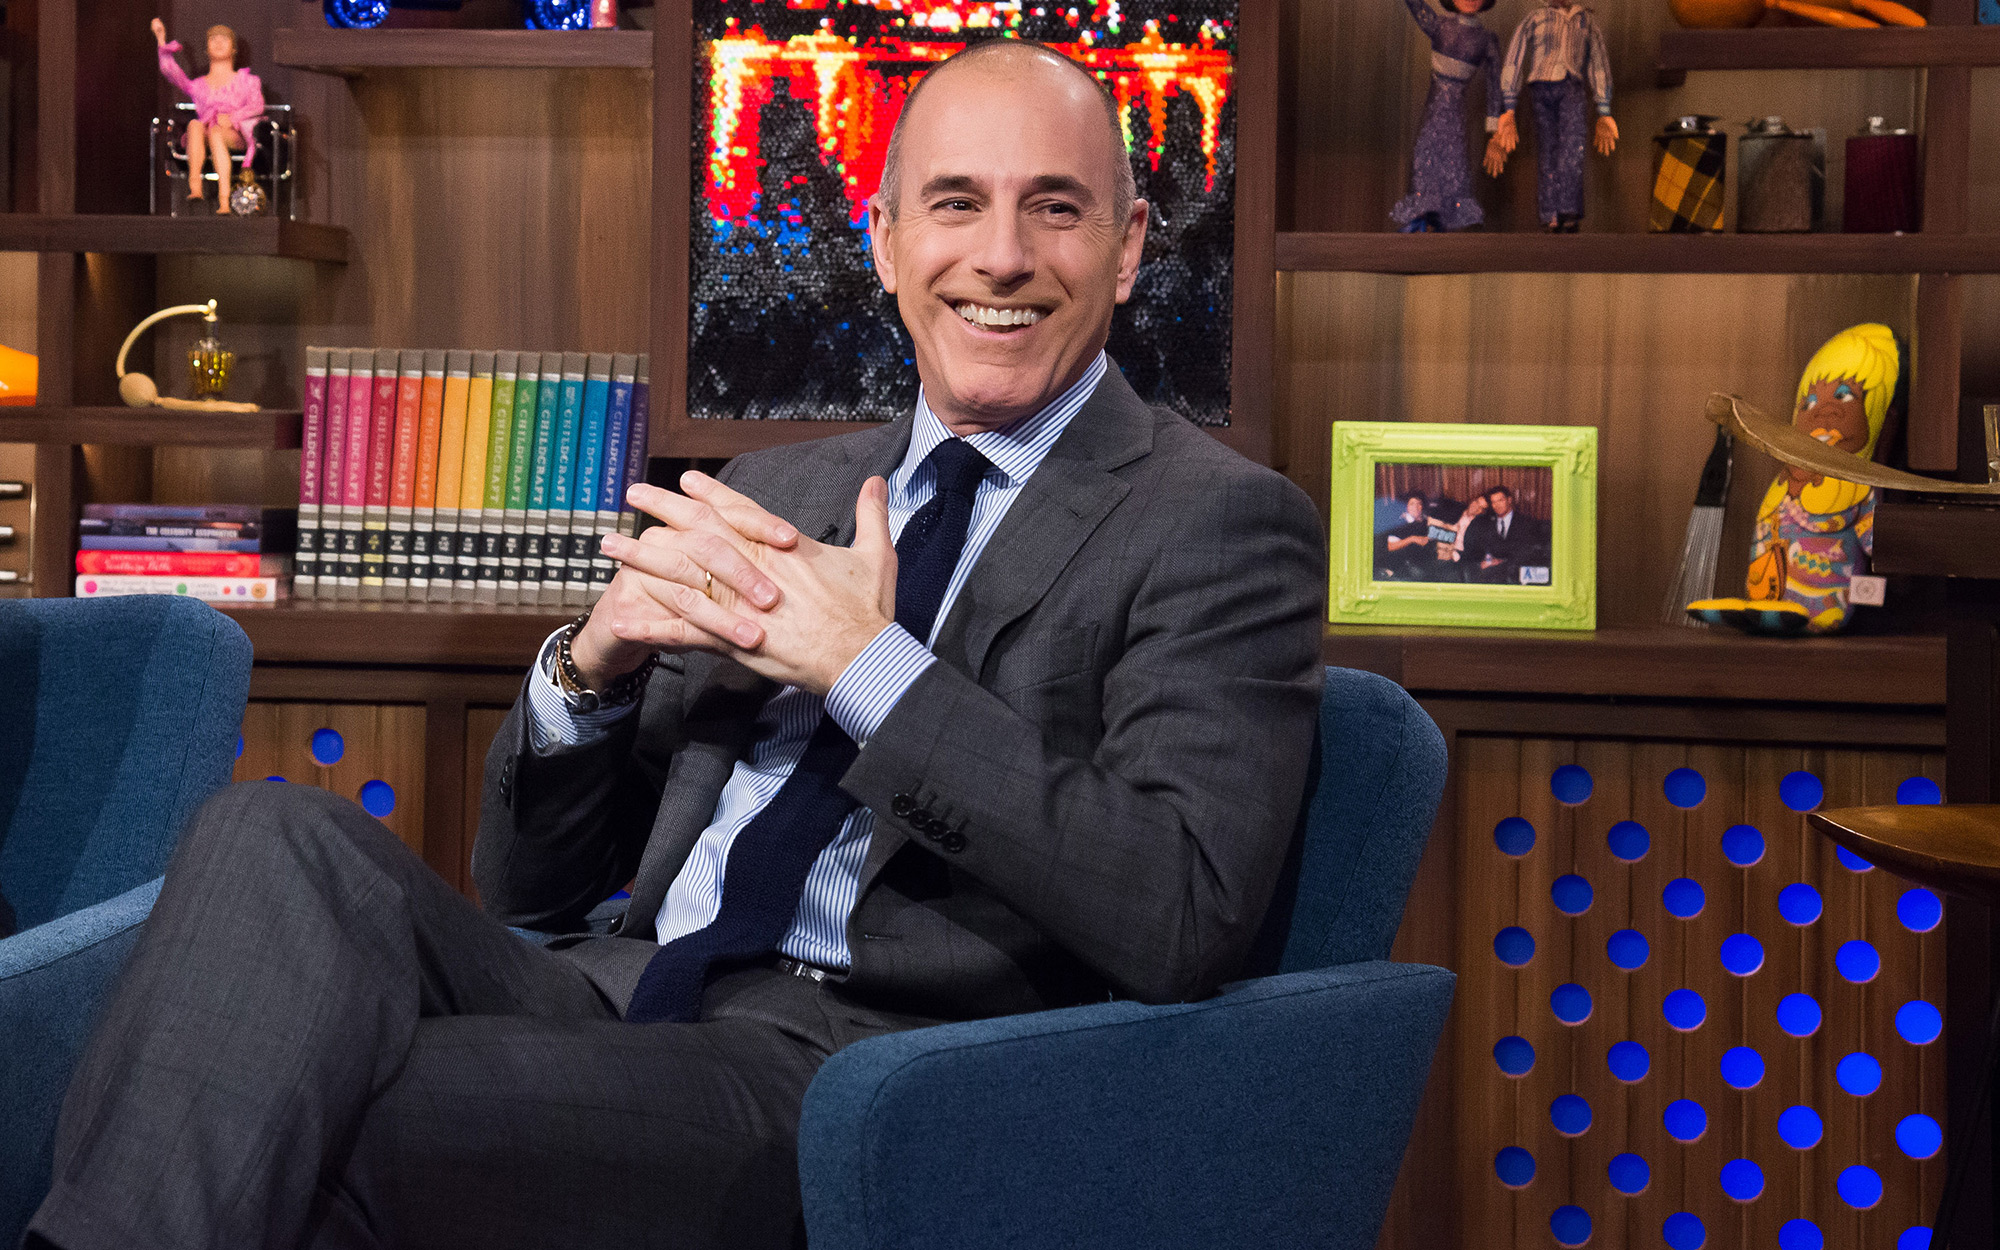 Things We Learned About Air Traffic Controllers From Matt Lauer